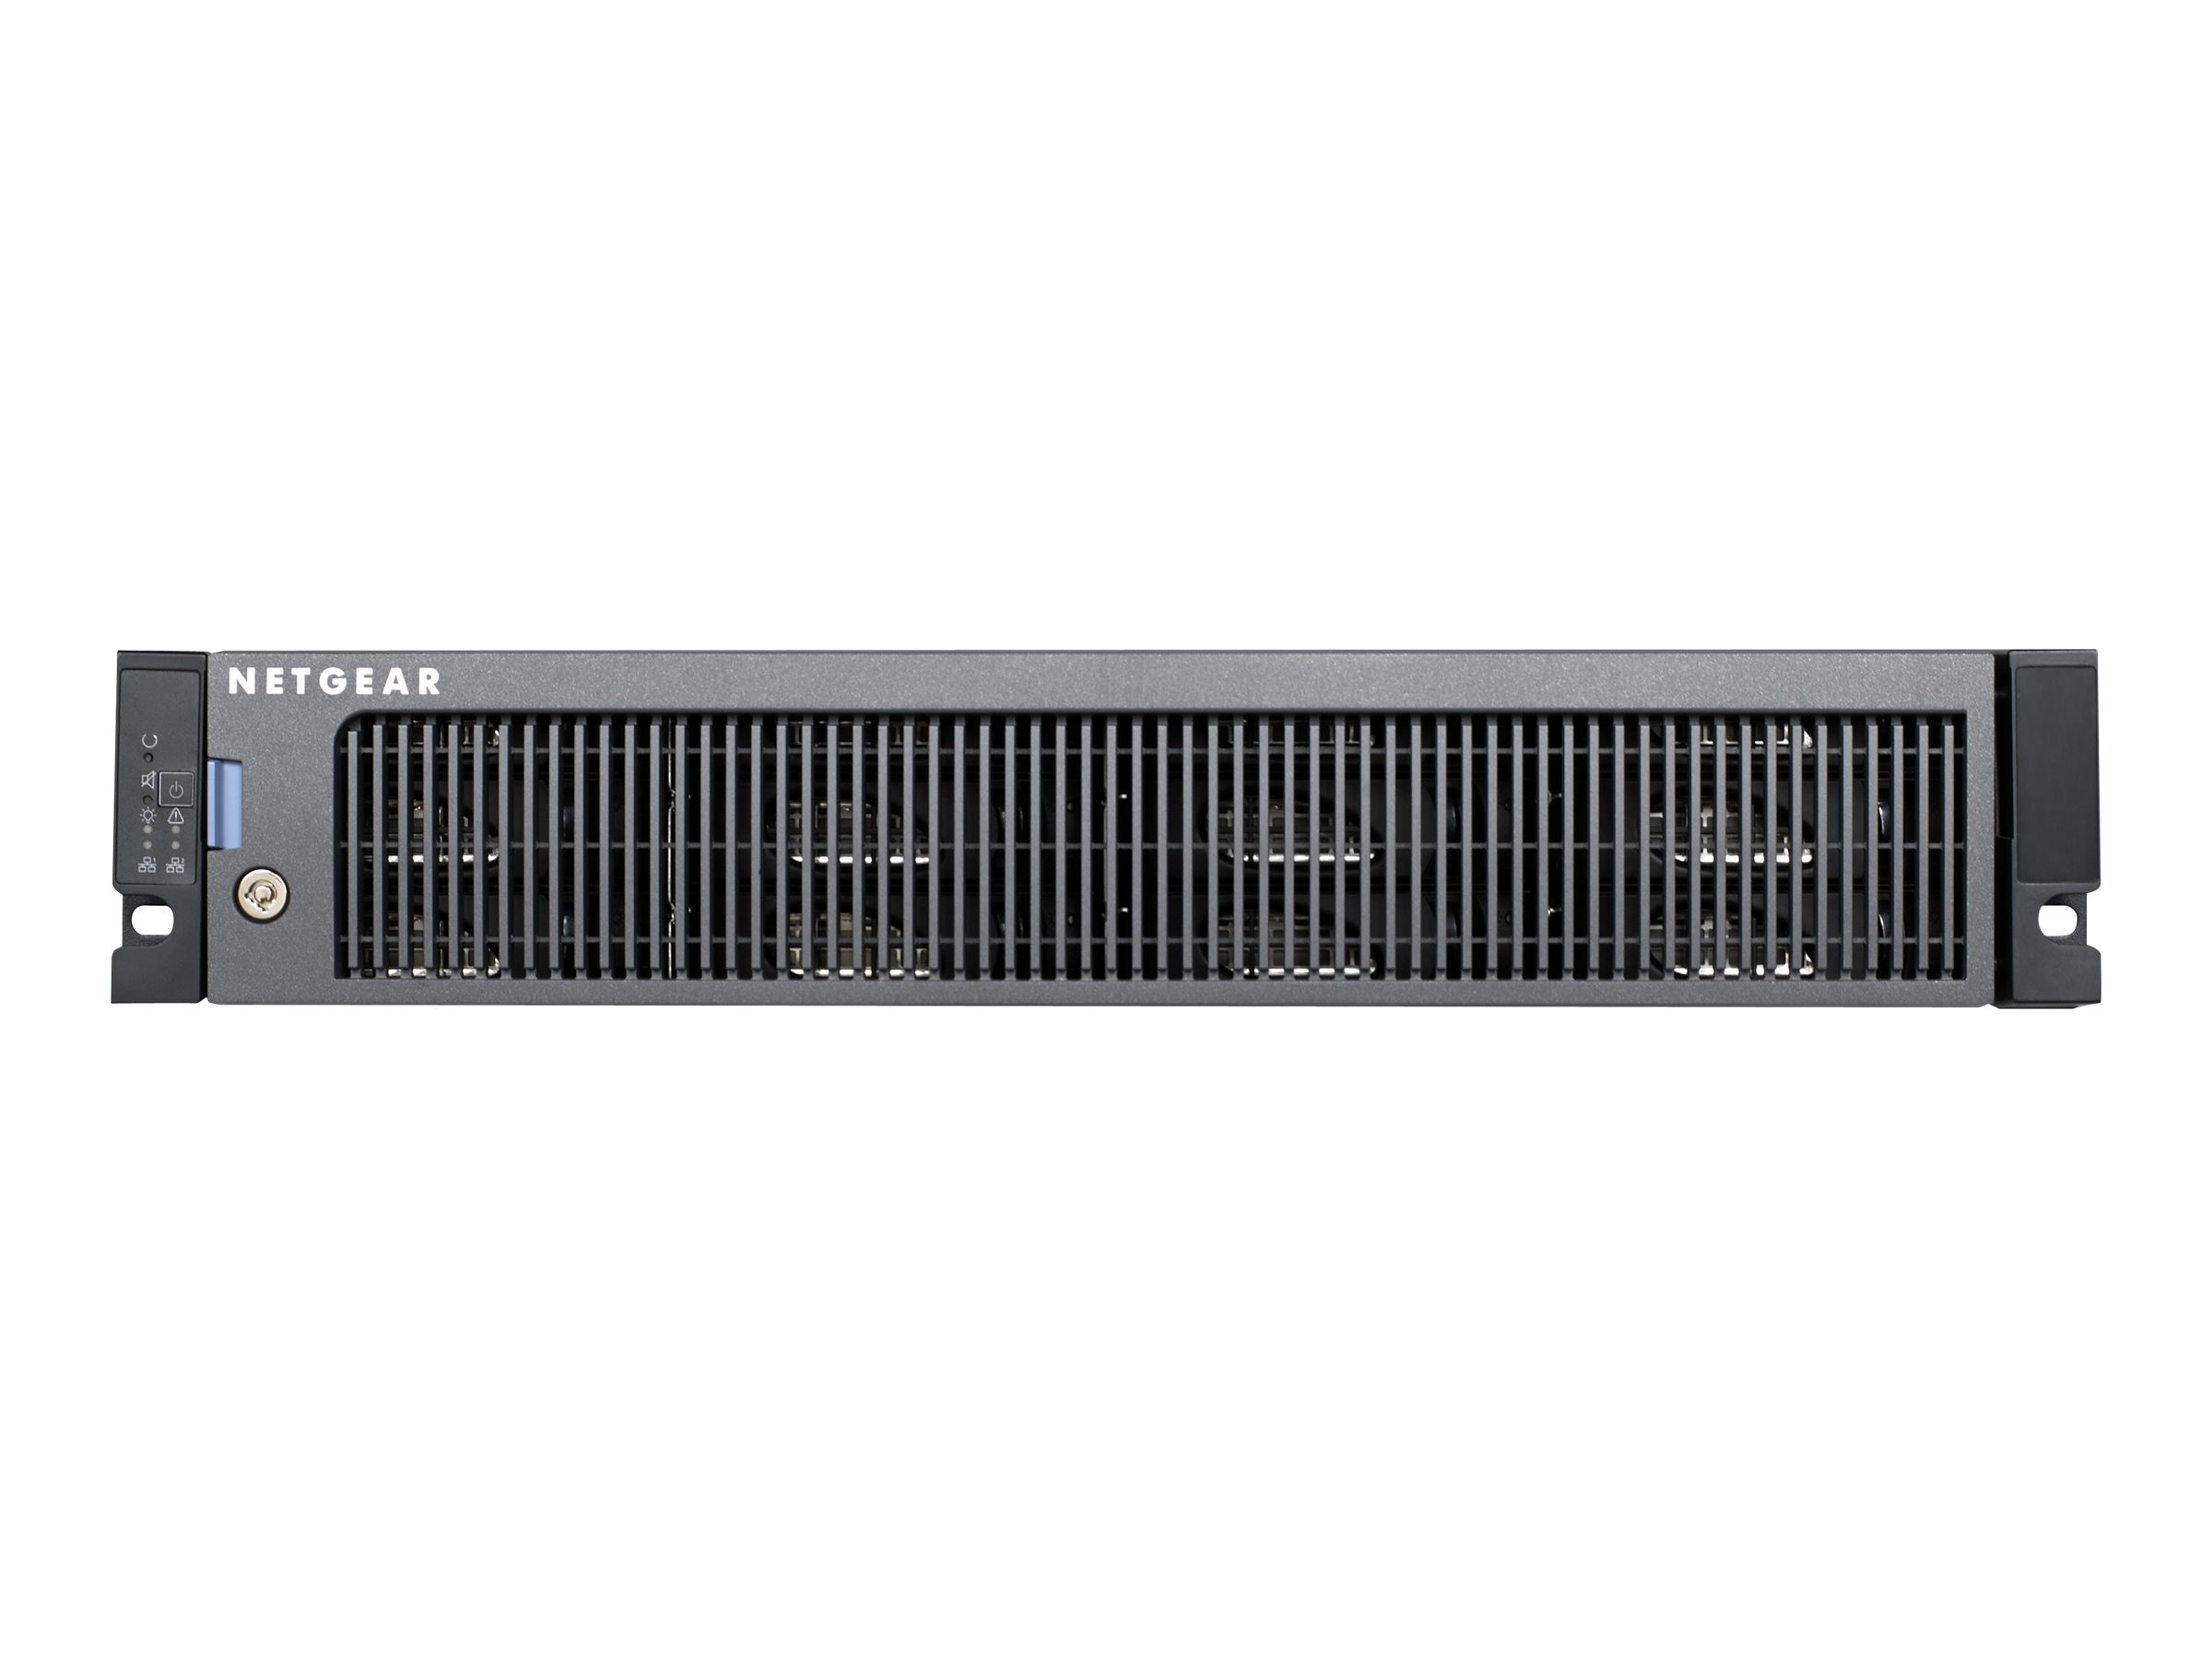 Netgear ReadyNAS 4312S Network Storage w  10Gbps LAN Optical SFP+ & 12x3TB Enterprise Hard Drives, RR4312S3-10000S